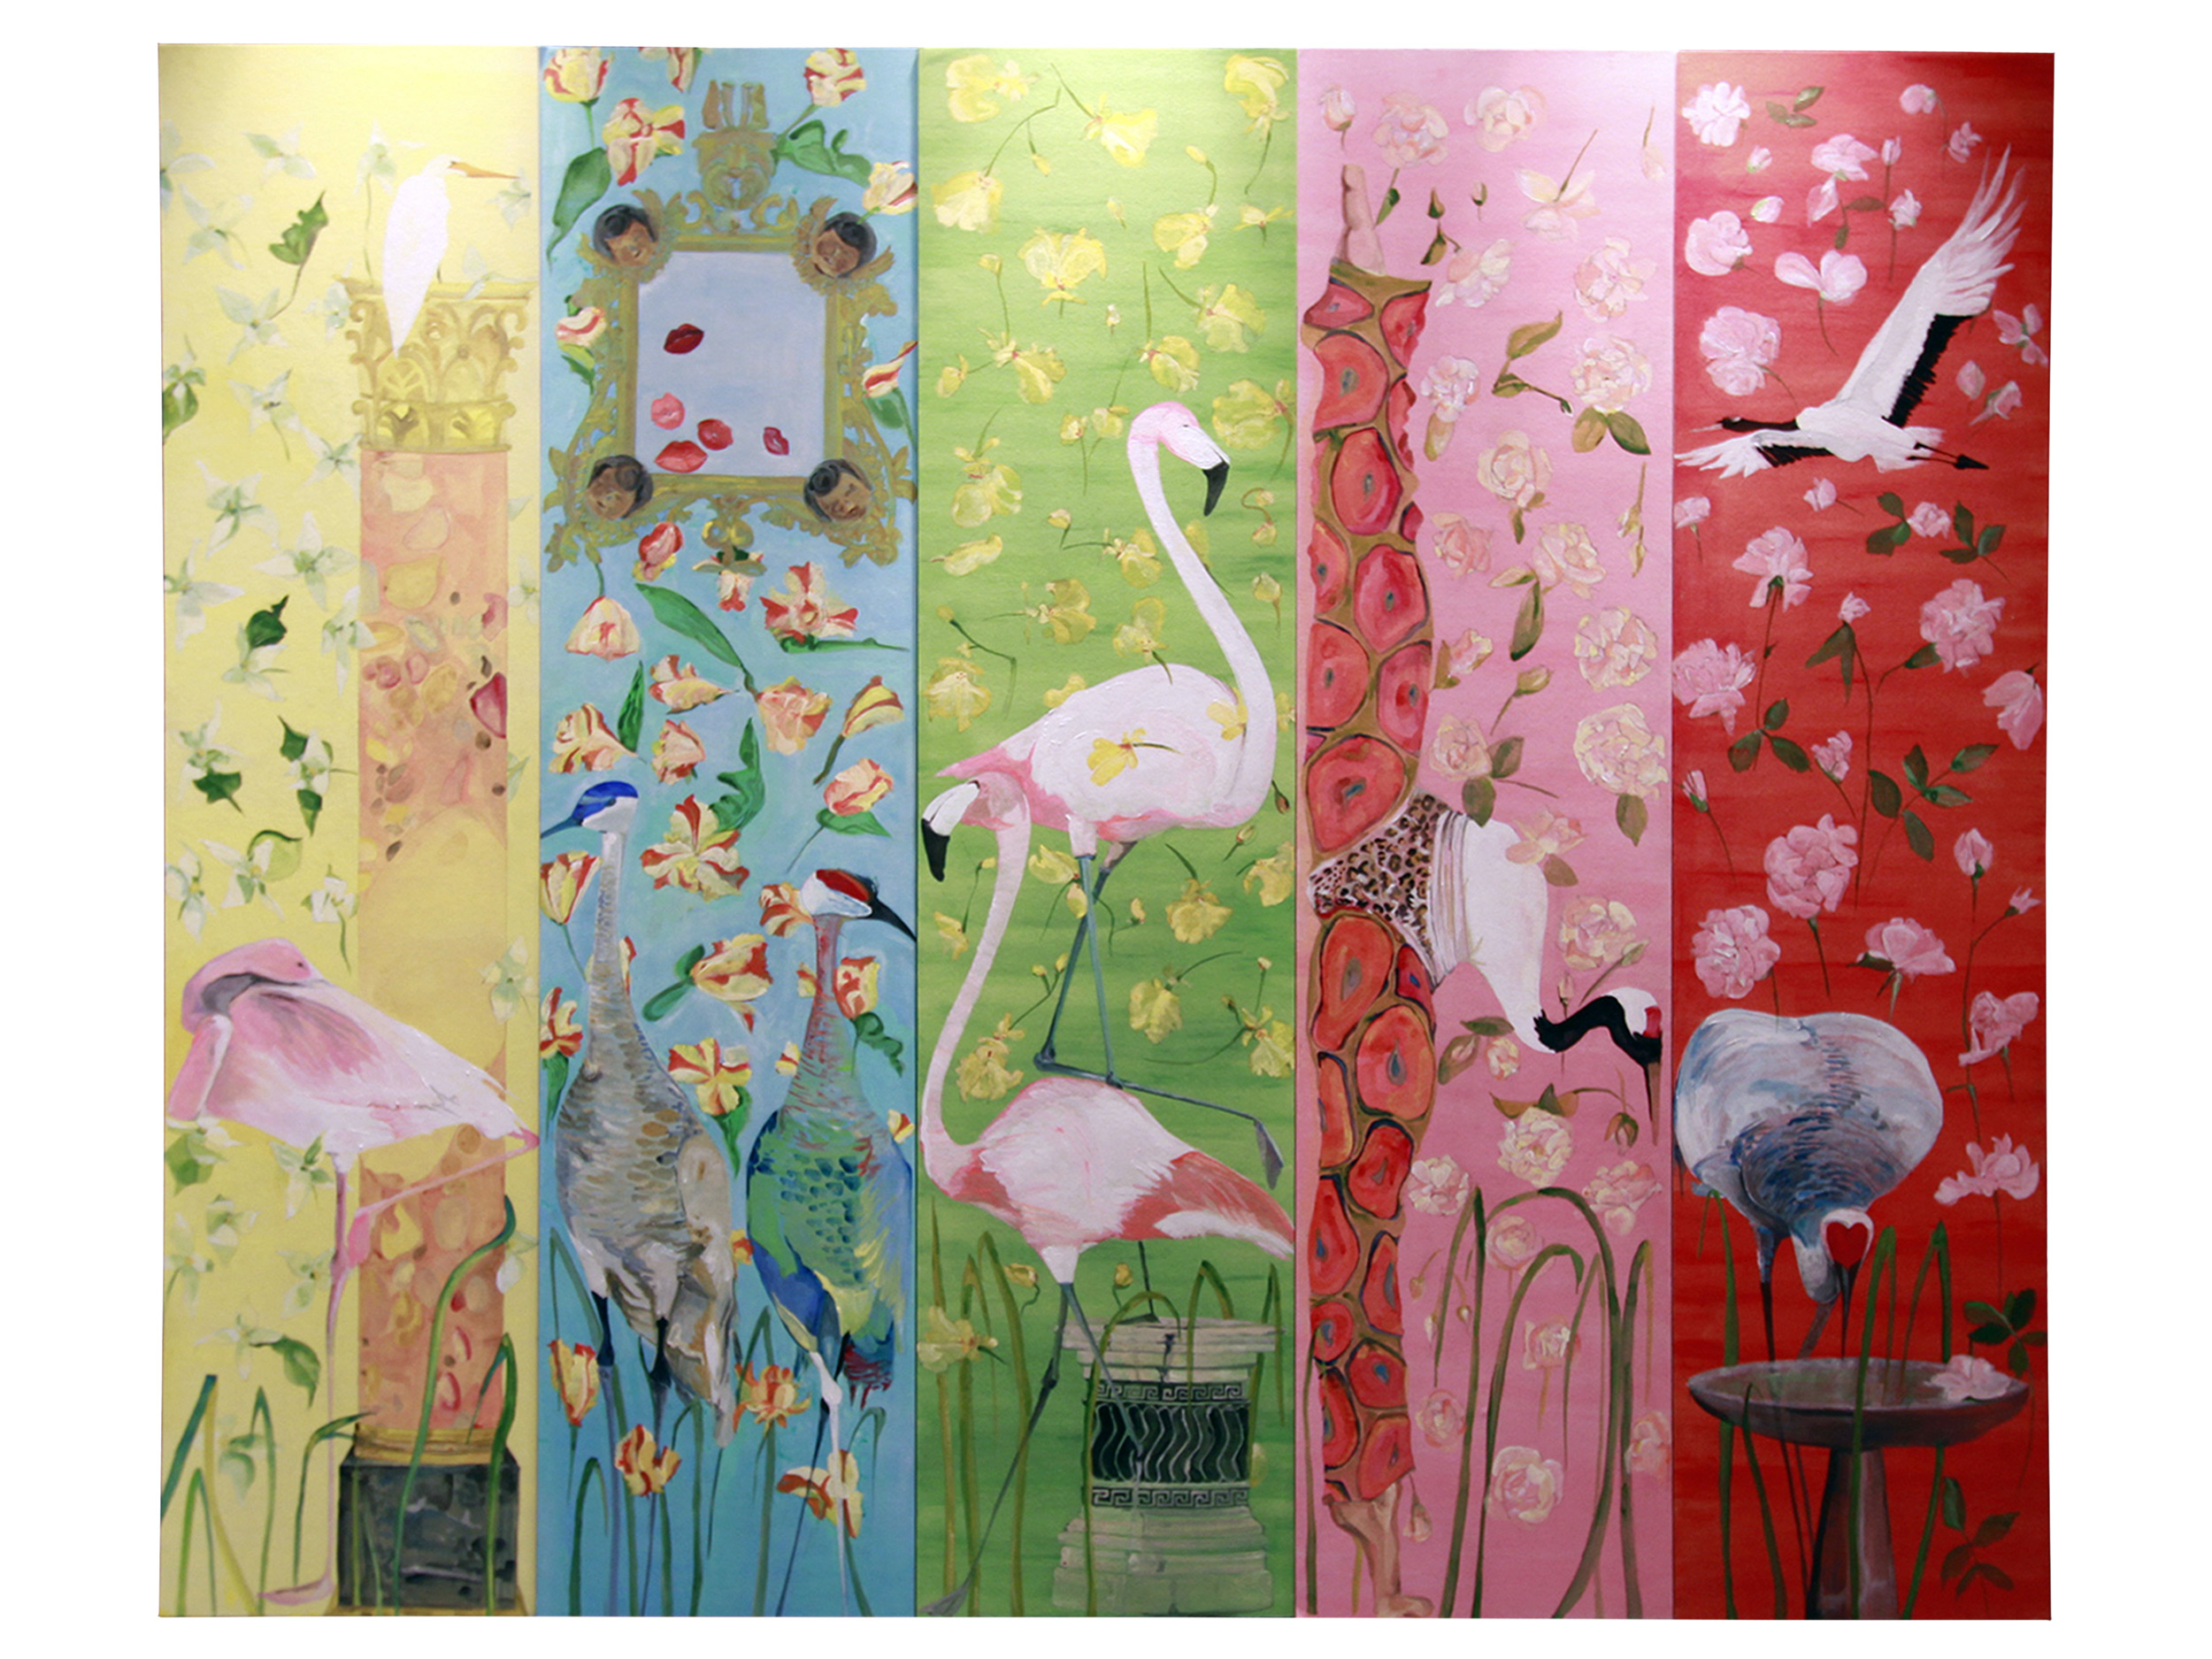 of Earthly Delights 5 panel hand painted wallpaper mural Paris 2015 2500x1875